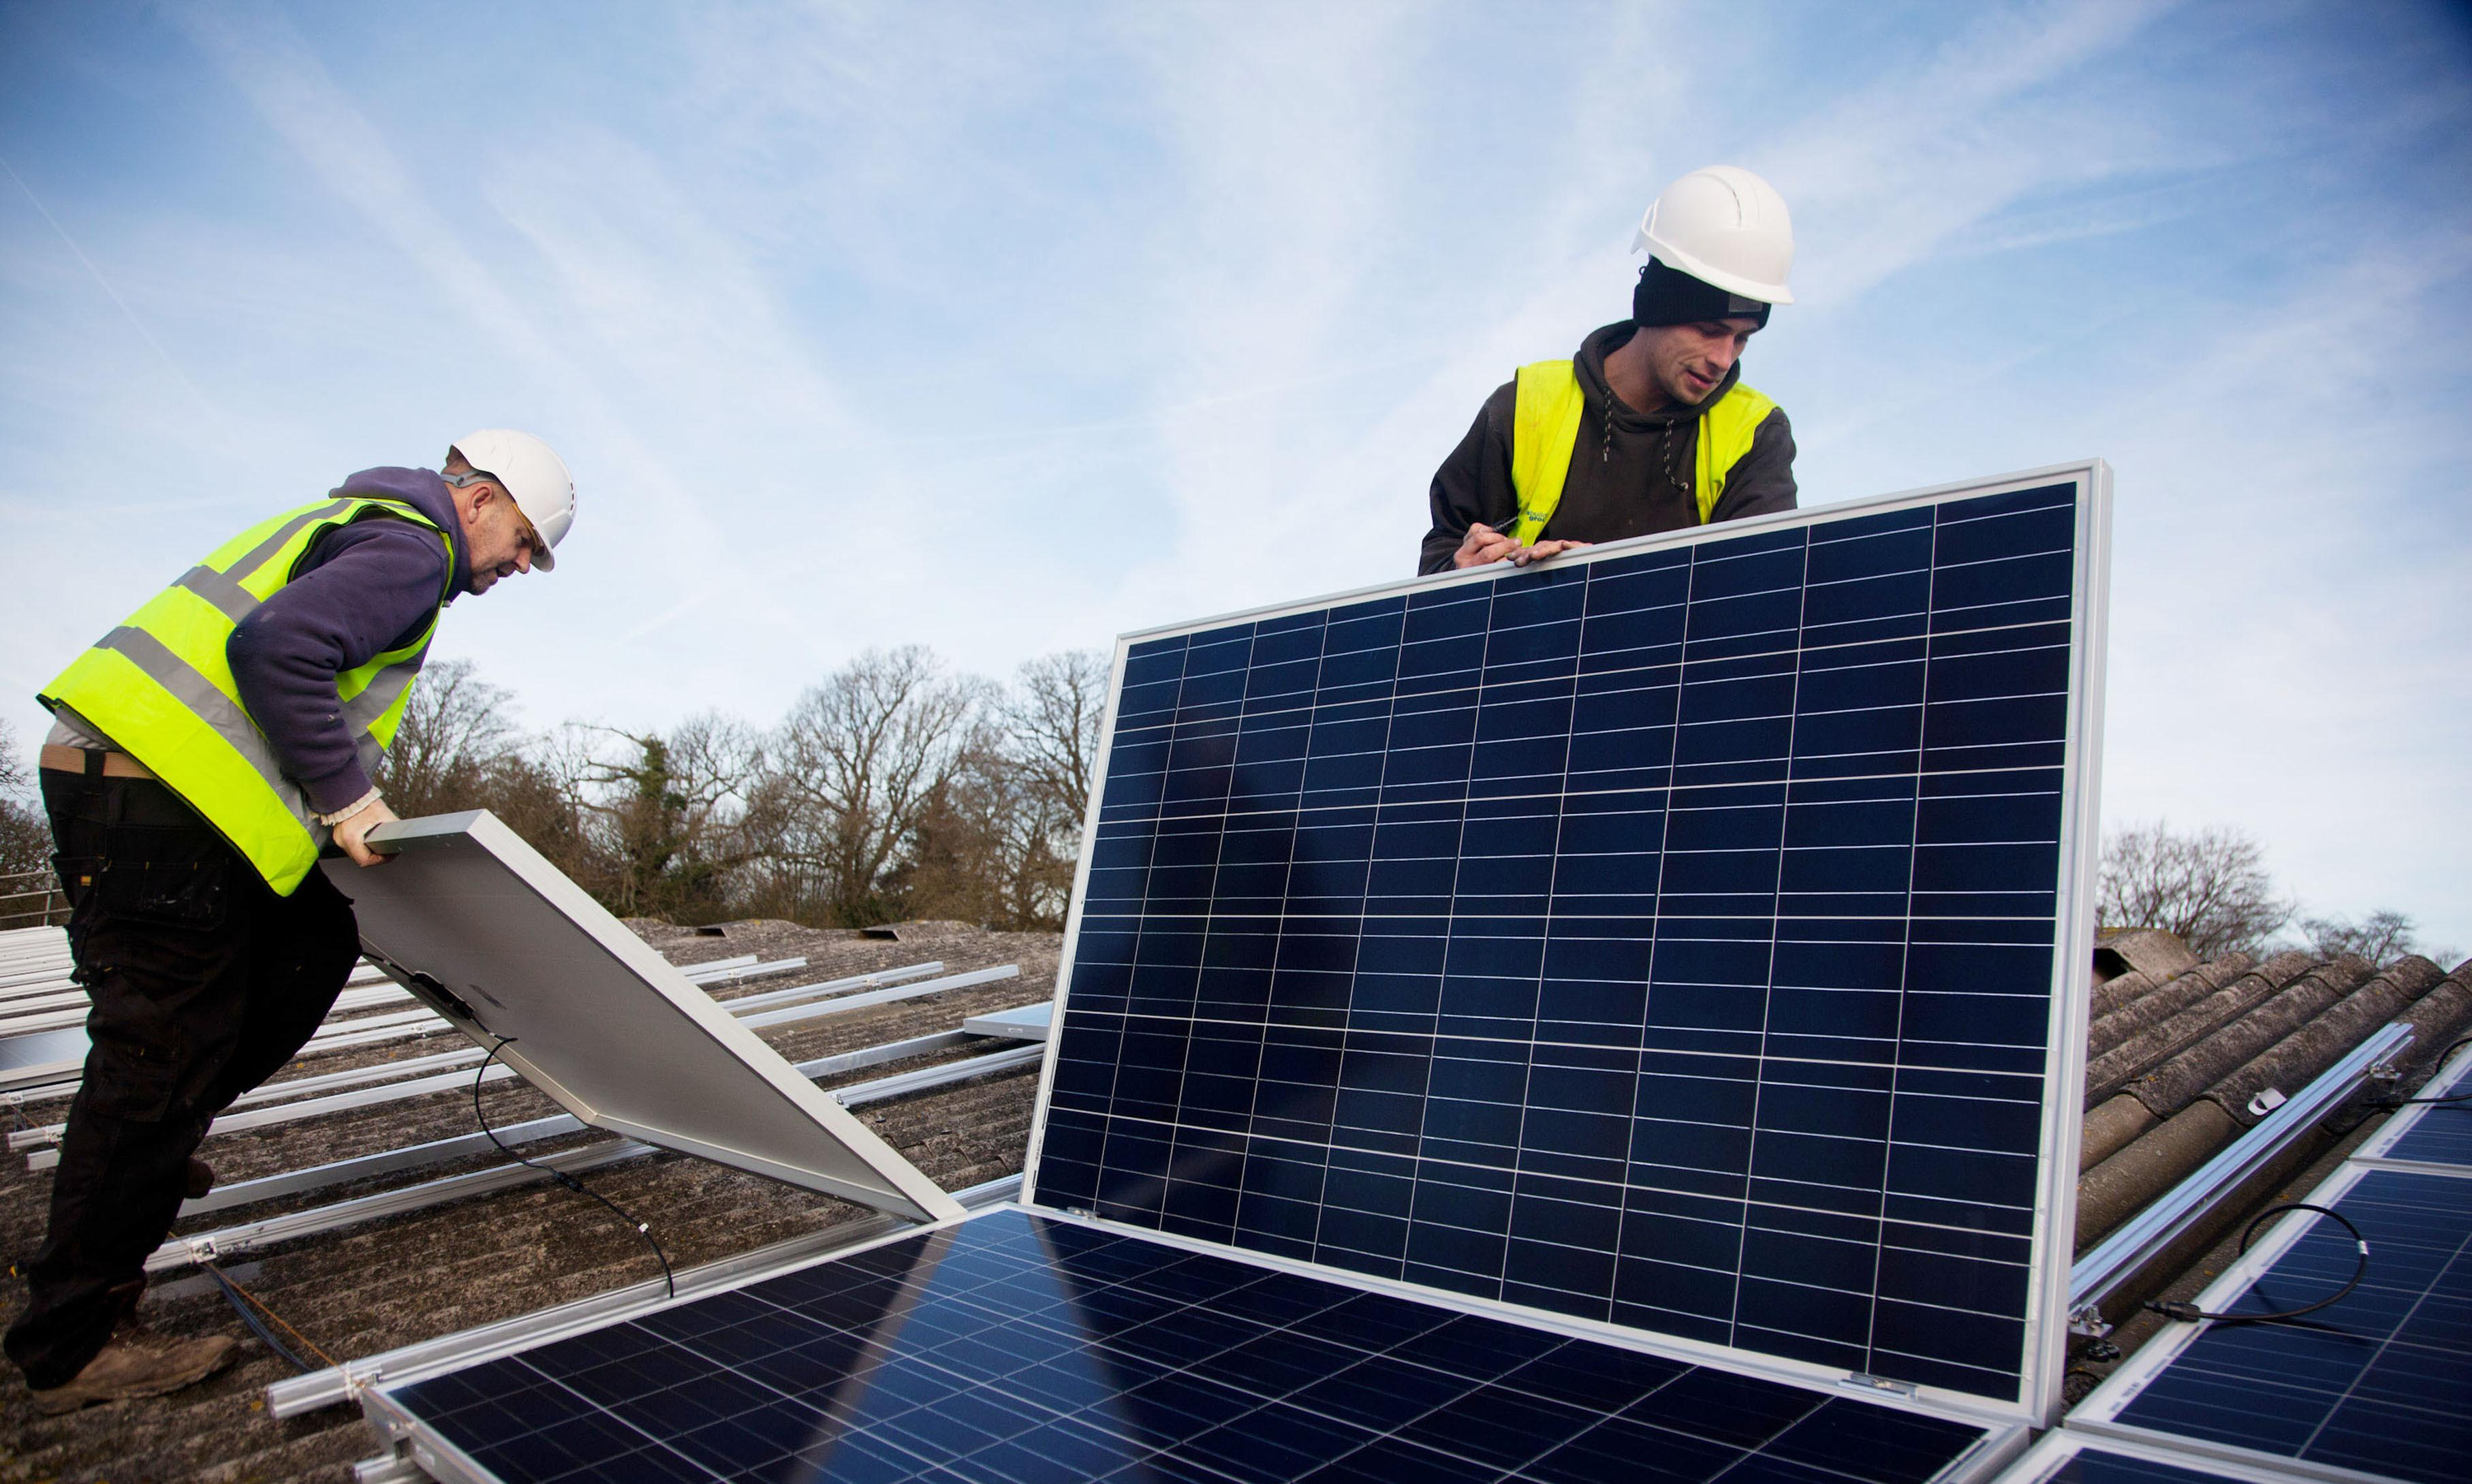 Solar power in crisis: 'My panels generate enough power for two loads of washing'